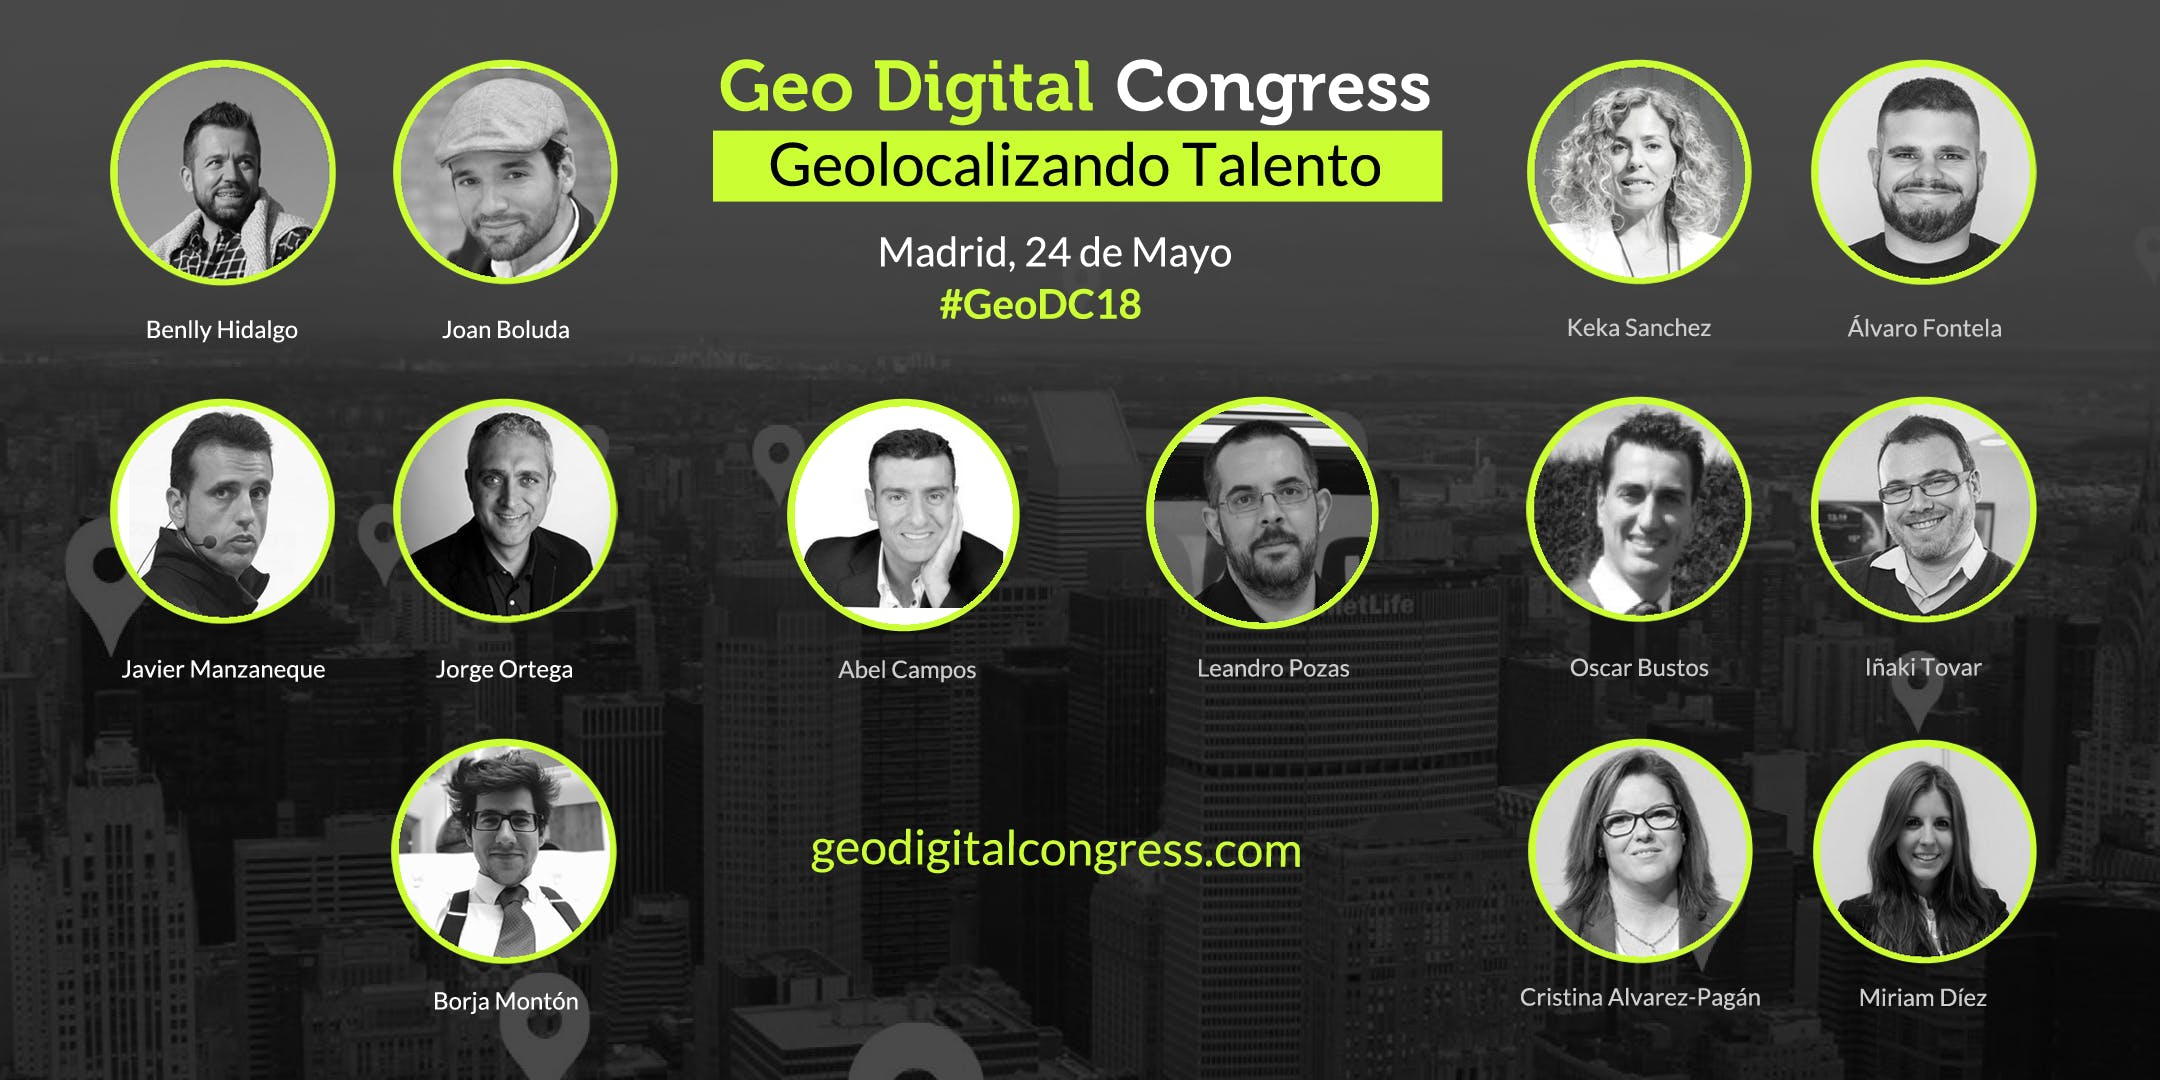 Geo Digital Congress